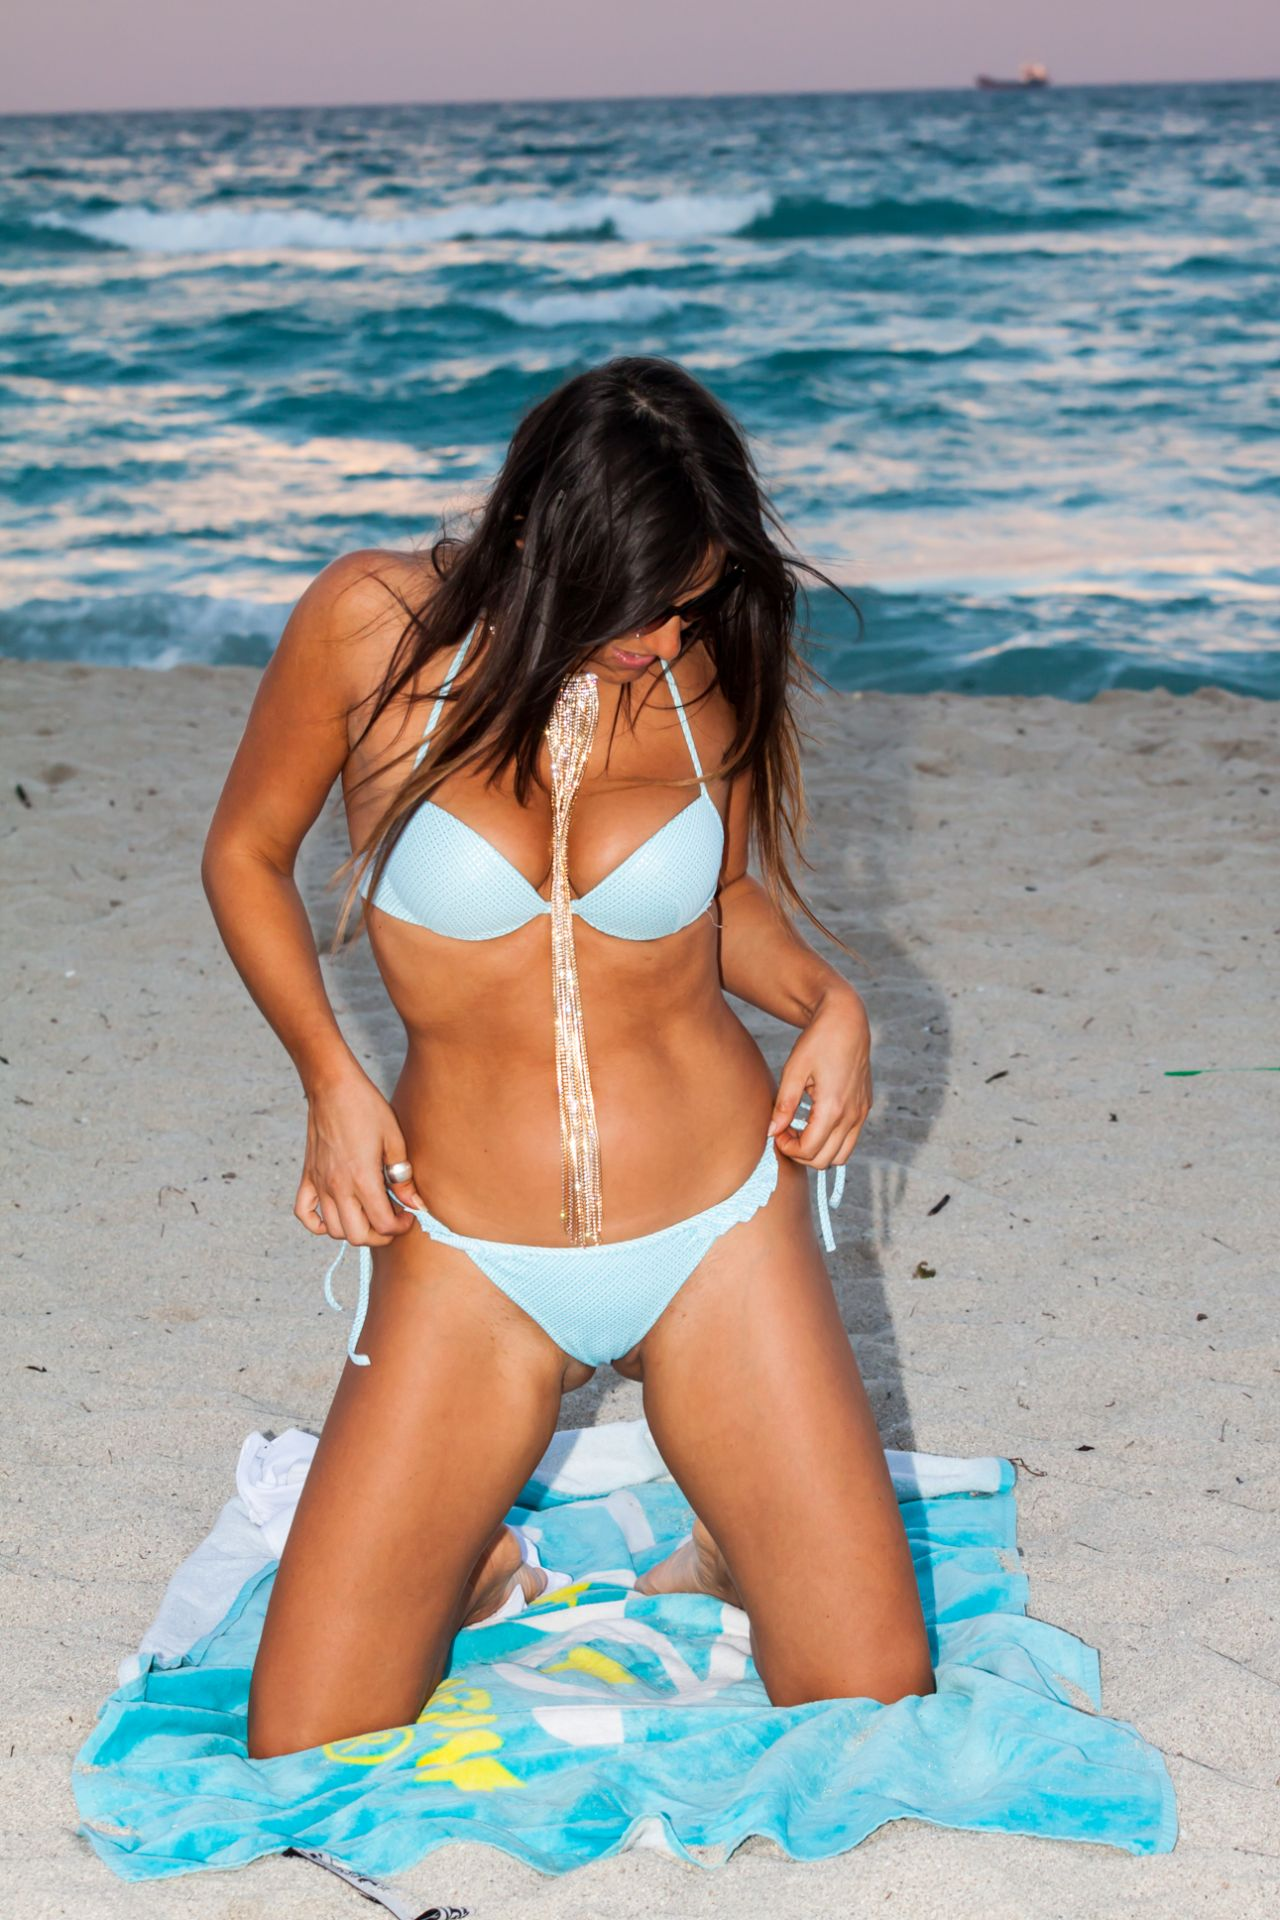 Claudia Romani in Bikini on South Beach in Miami 2 Pic 15 of 35